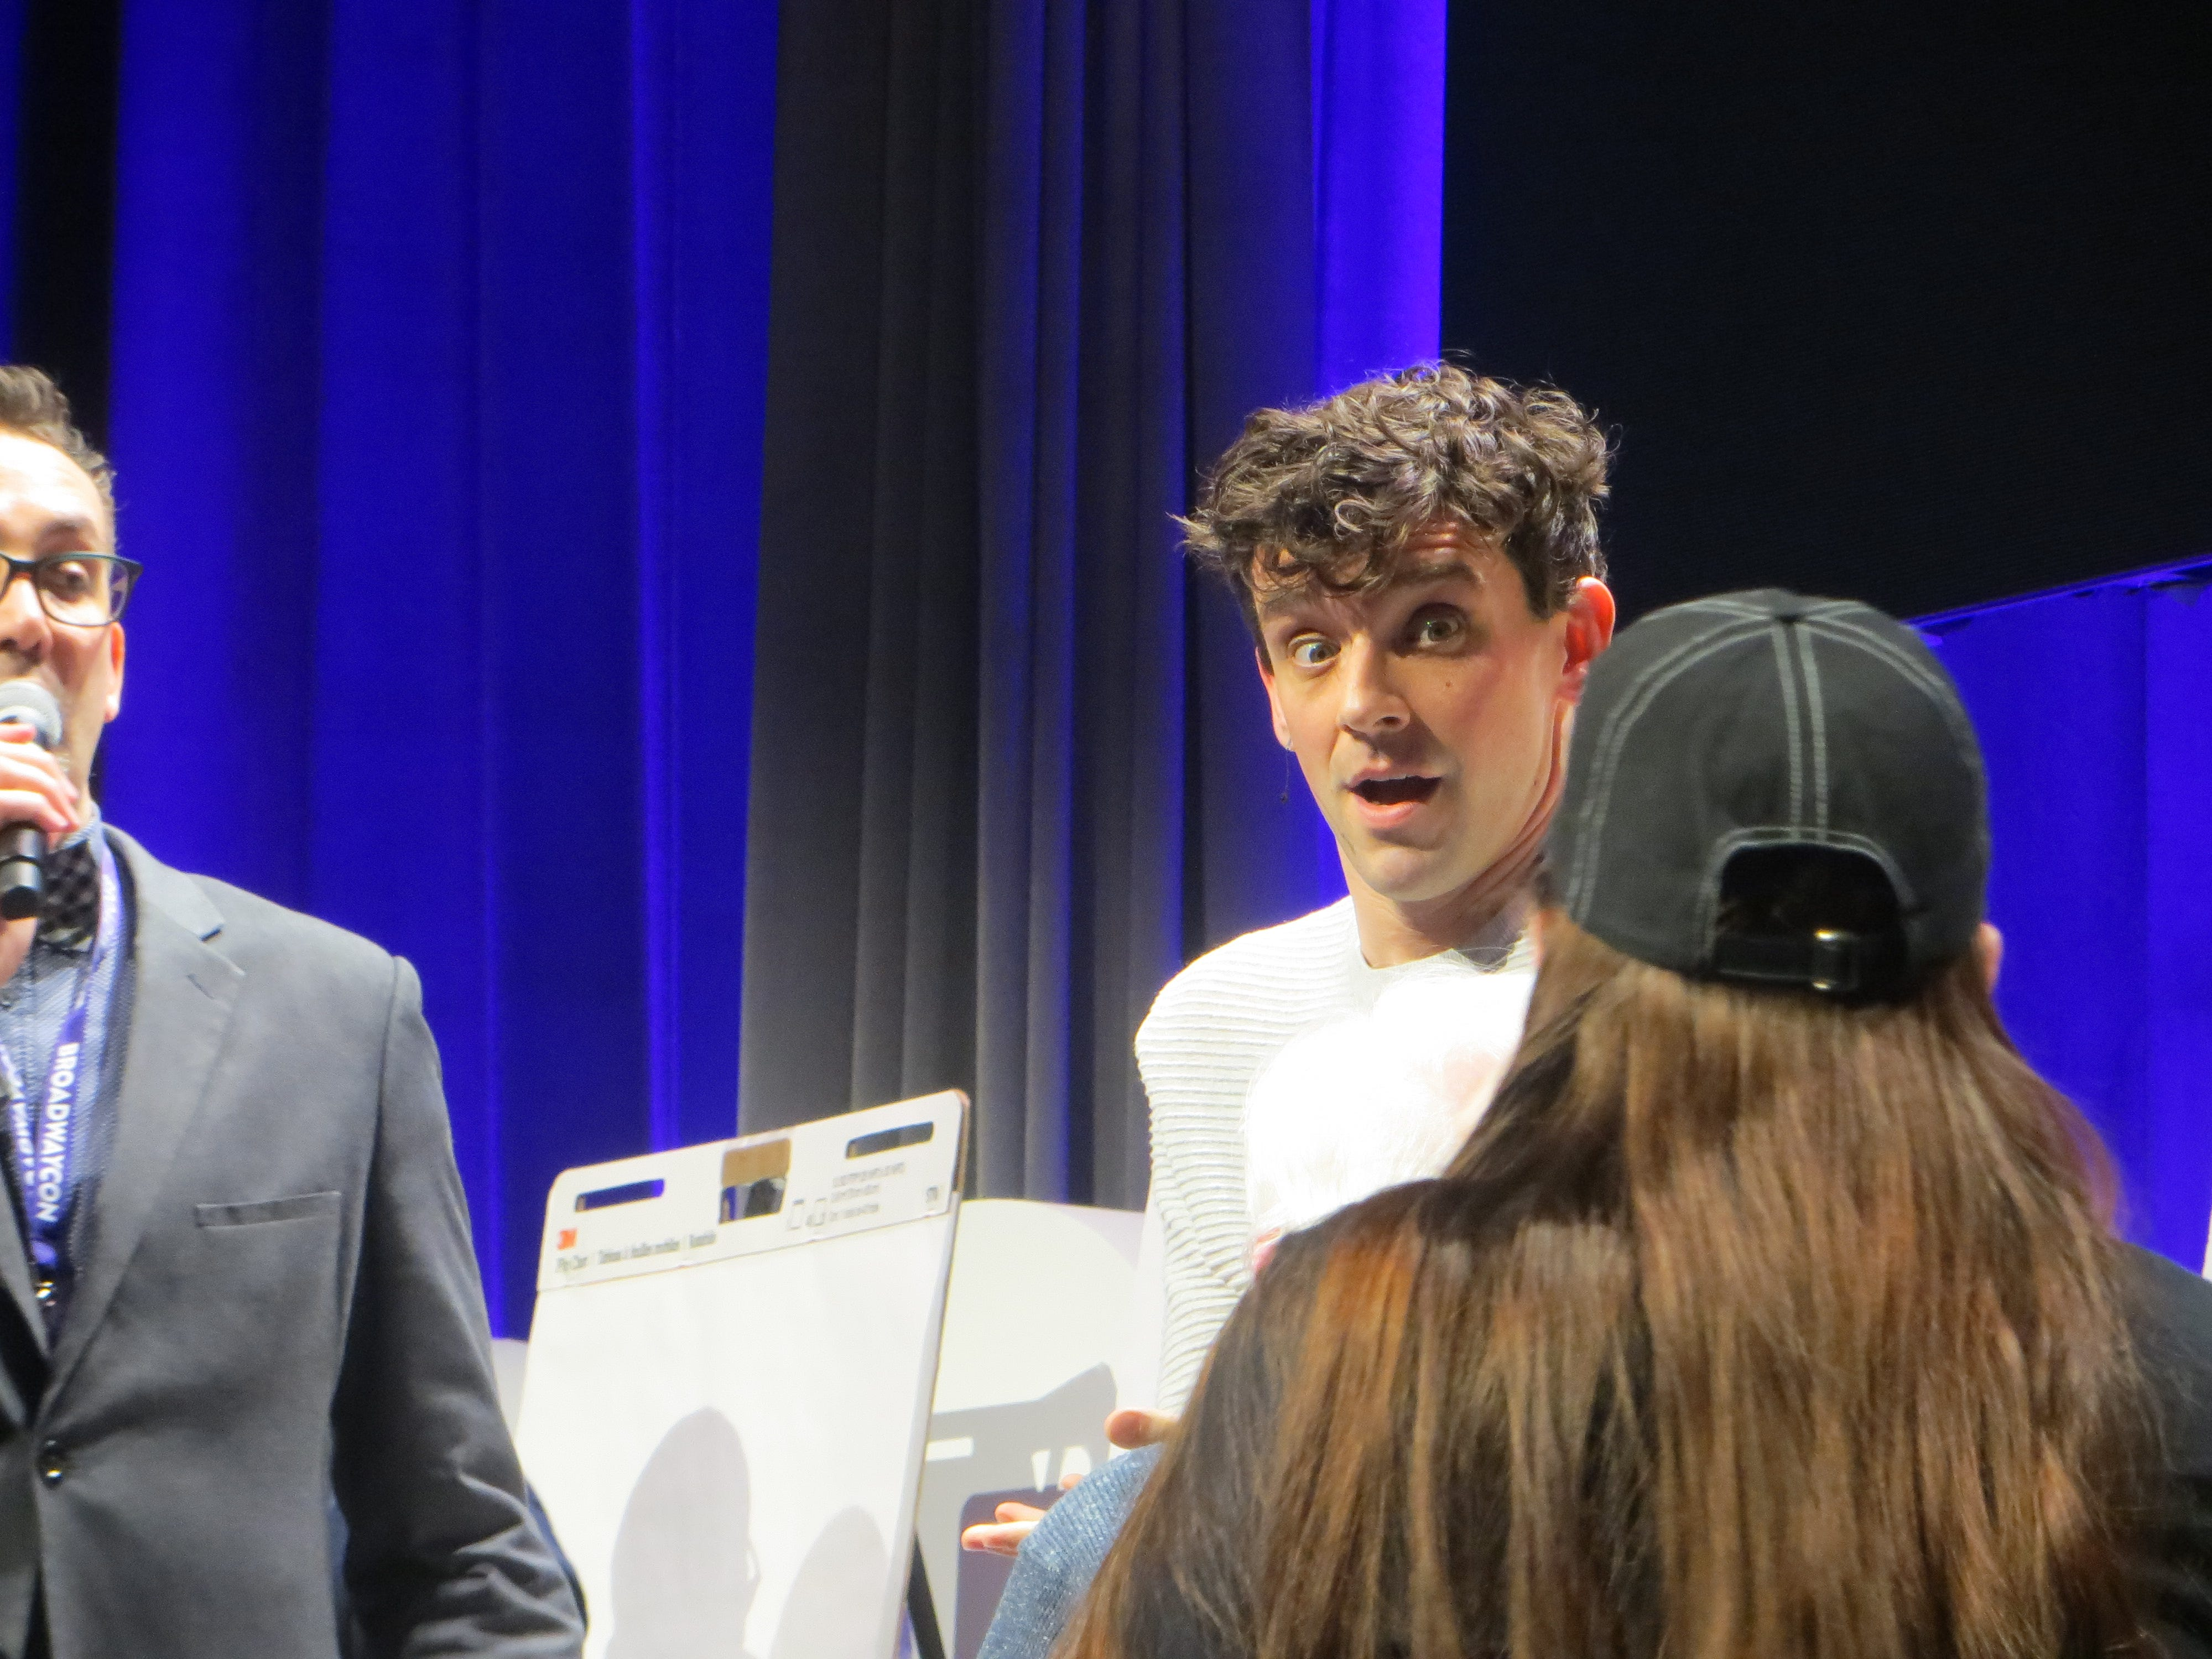 Michael Urie takes part in Game Night  at BroadwayCon 2019, held Jan. 11 to 13, 2019, at the New York Hilton Midtown in Manhattan.